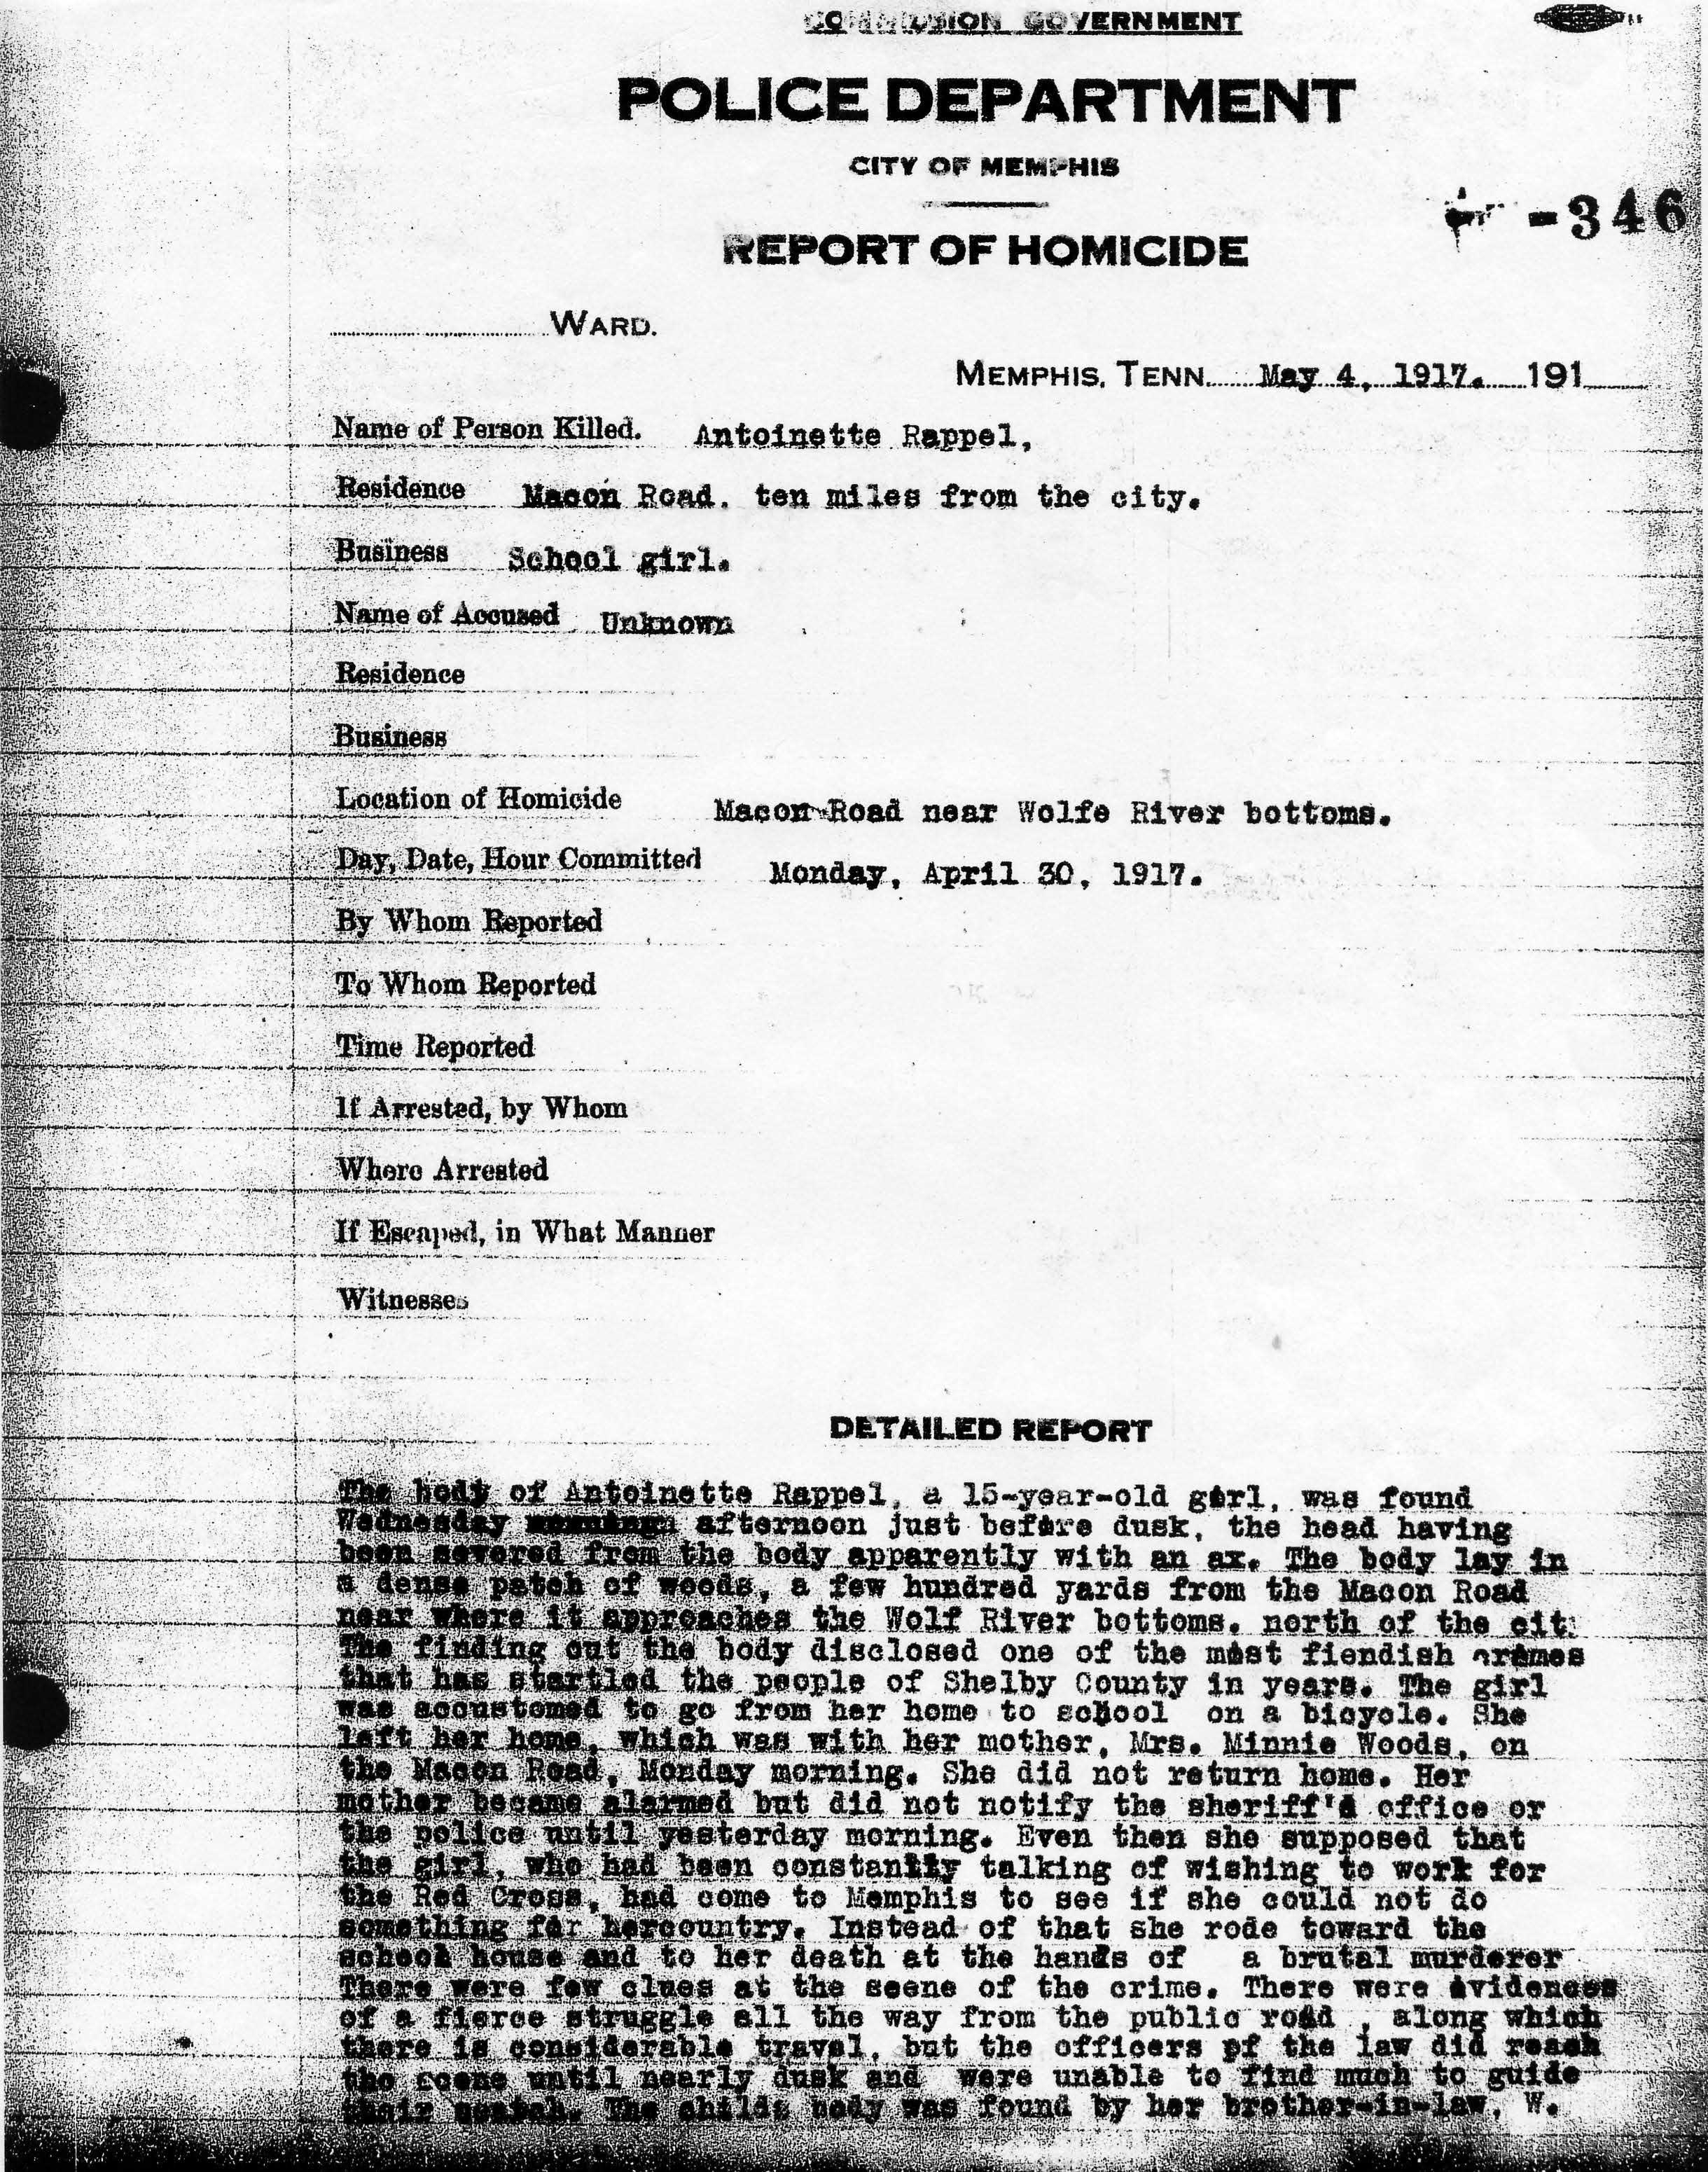 Police Report, 5/4/1917